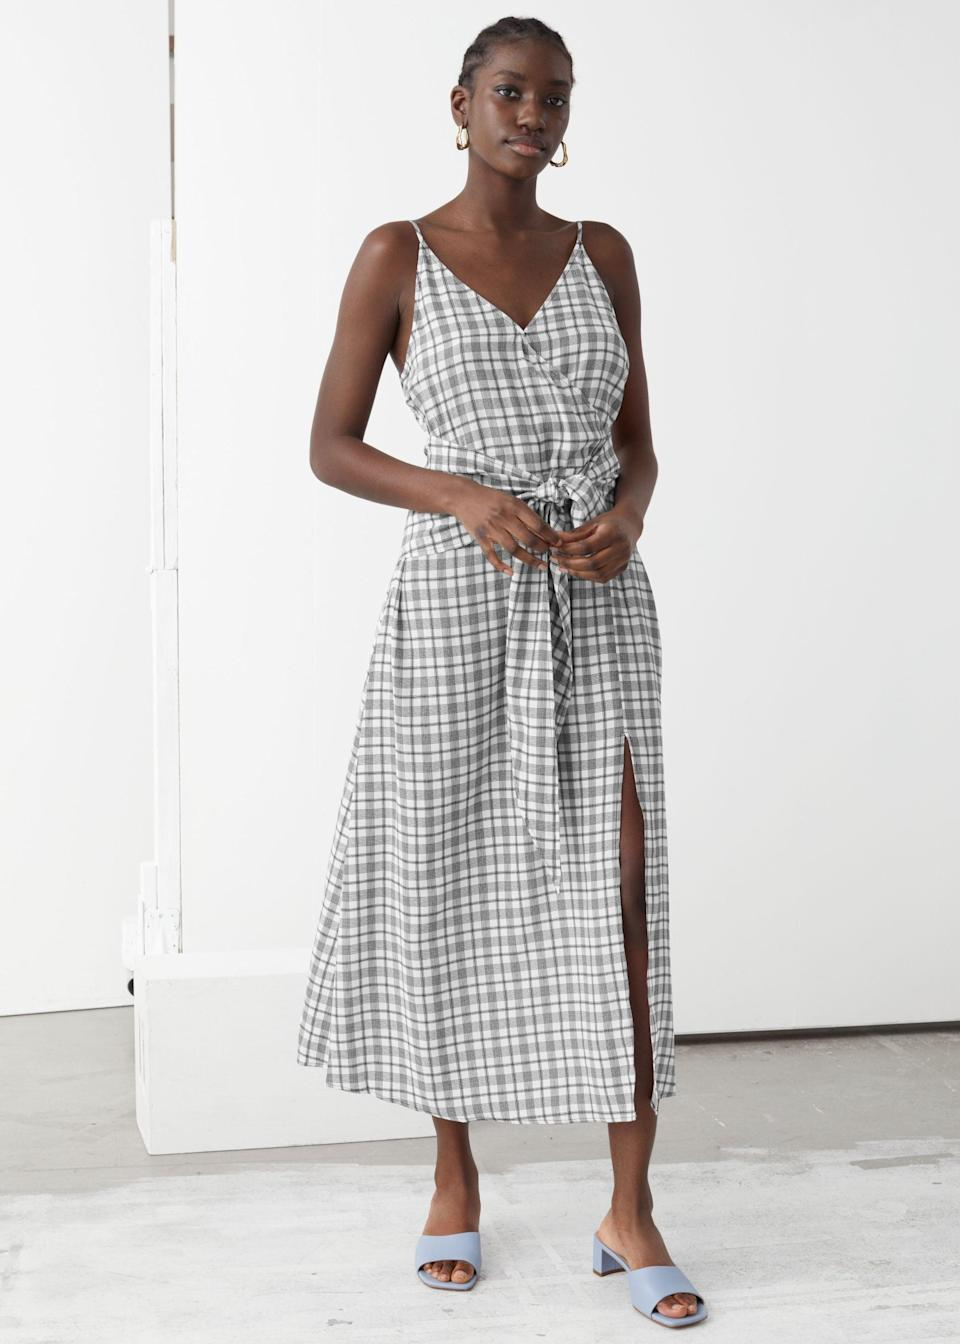 """<br> <br> <strong>& Other Stories</strong> V-Neck Waist Tie Midi Dress, $, available at <a href=""""https://go.skimresources.com/?id=30283X879131&url=https%3A%2F%2Fwww.stories.com%2Fen_usd%2Fclothing%2Fdresses%2Fmidi-dresses%2Fproduct.v-neck-waist-tie-midi-dress-black.0869913004.html"""" rel=""""nofollow noopener"""" target=""""_blank"""" data-ylk=""""slk:& Other Stories"""" class=""""link rapid-noclick-resp"""">& Other Stories</a>"""